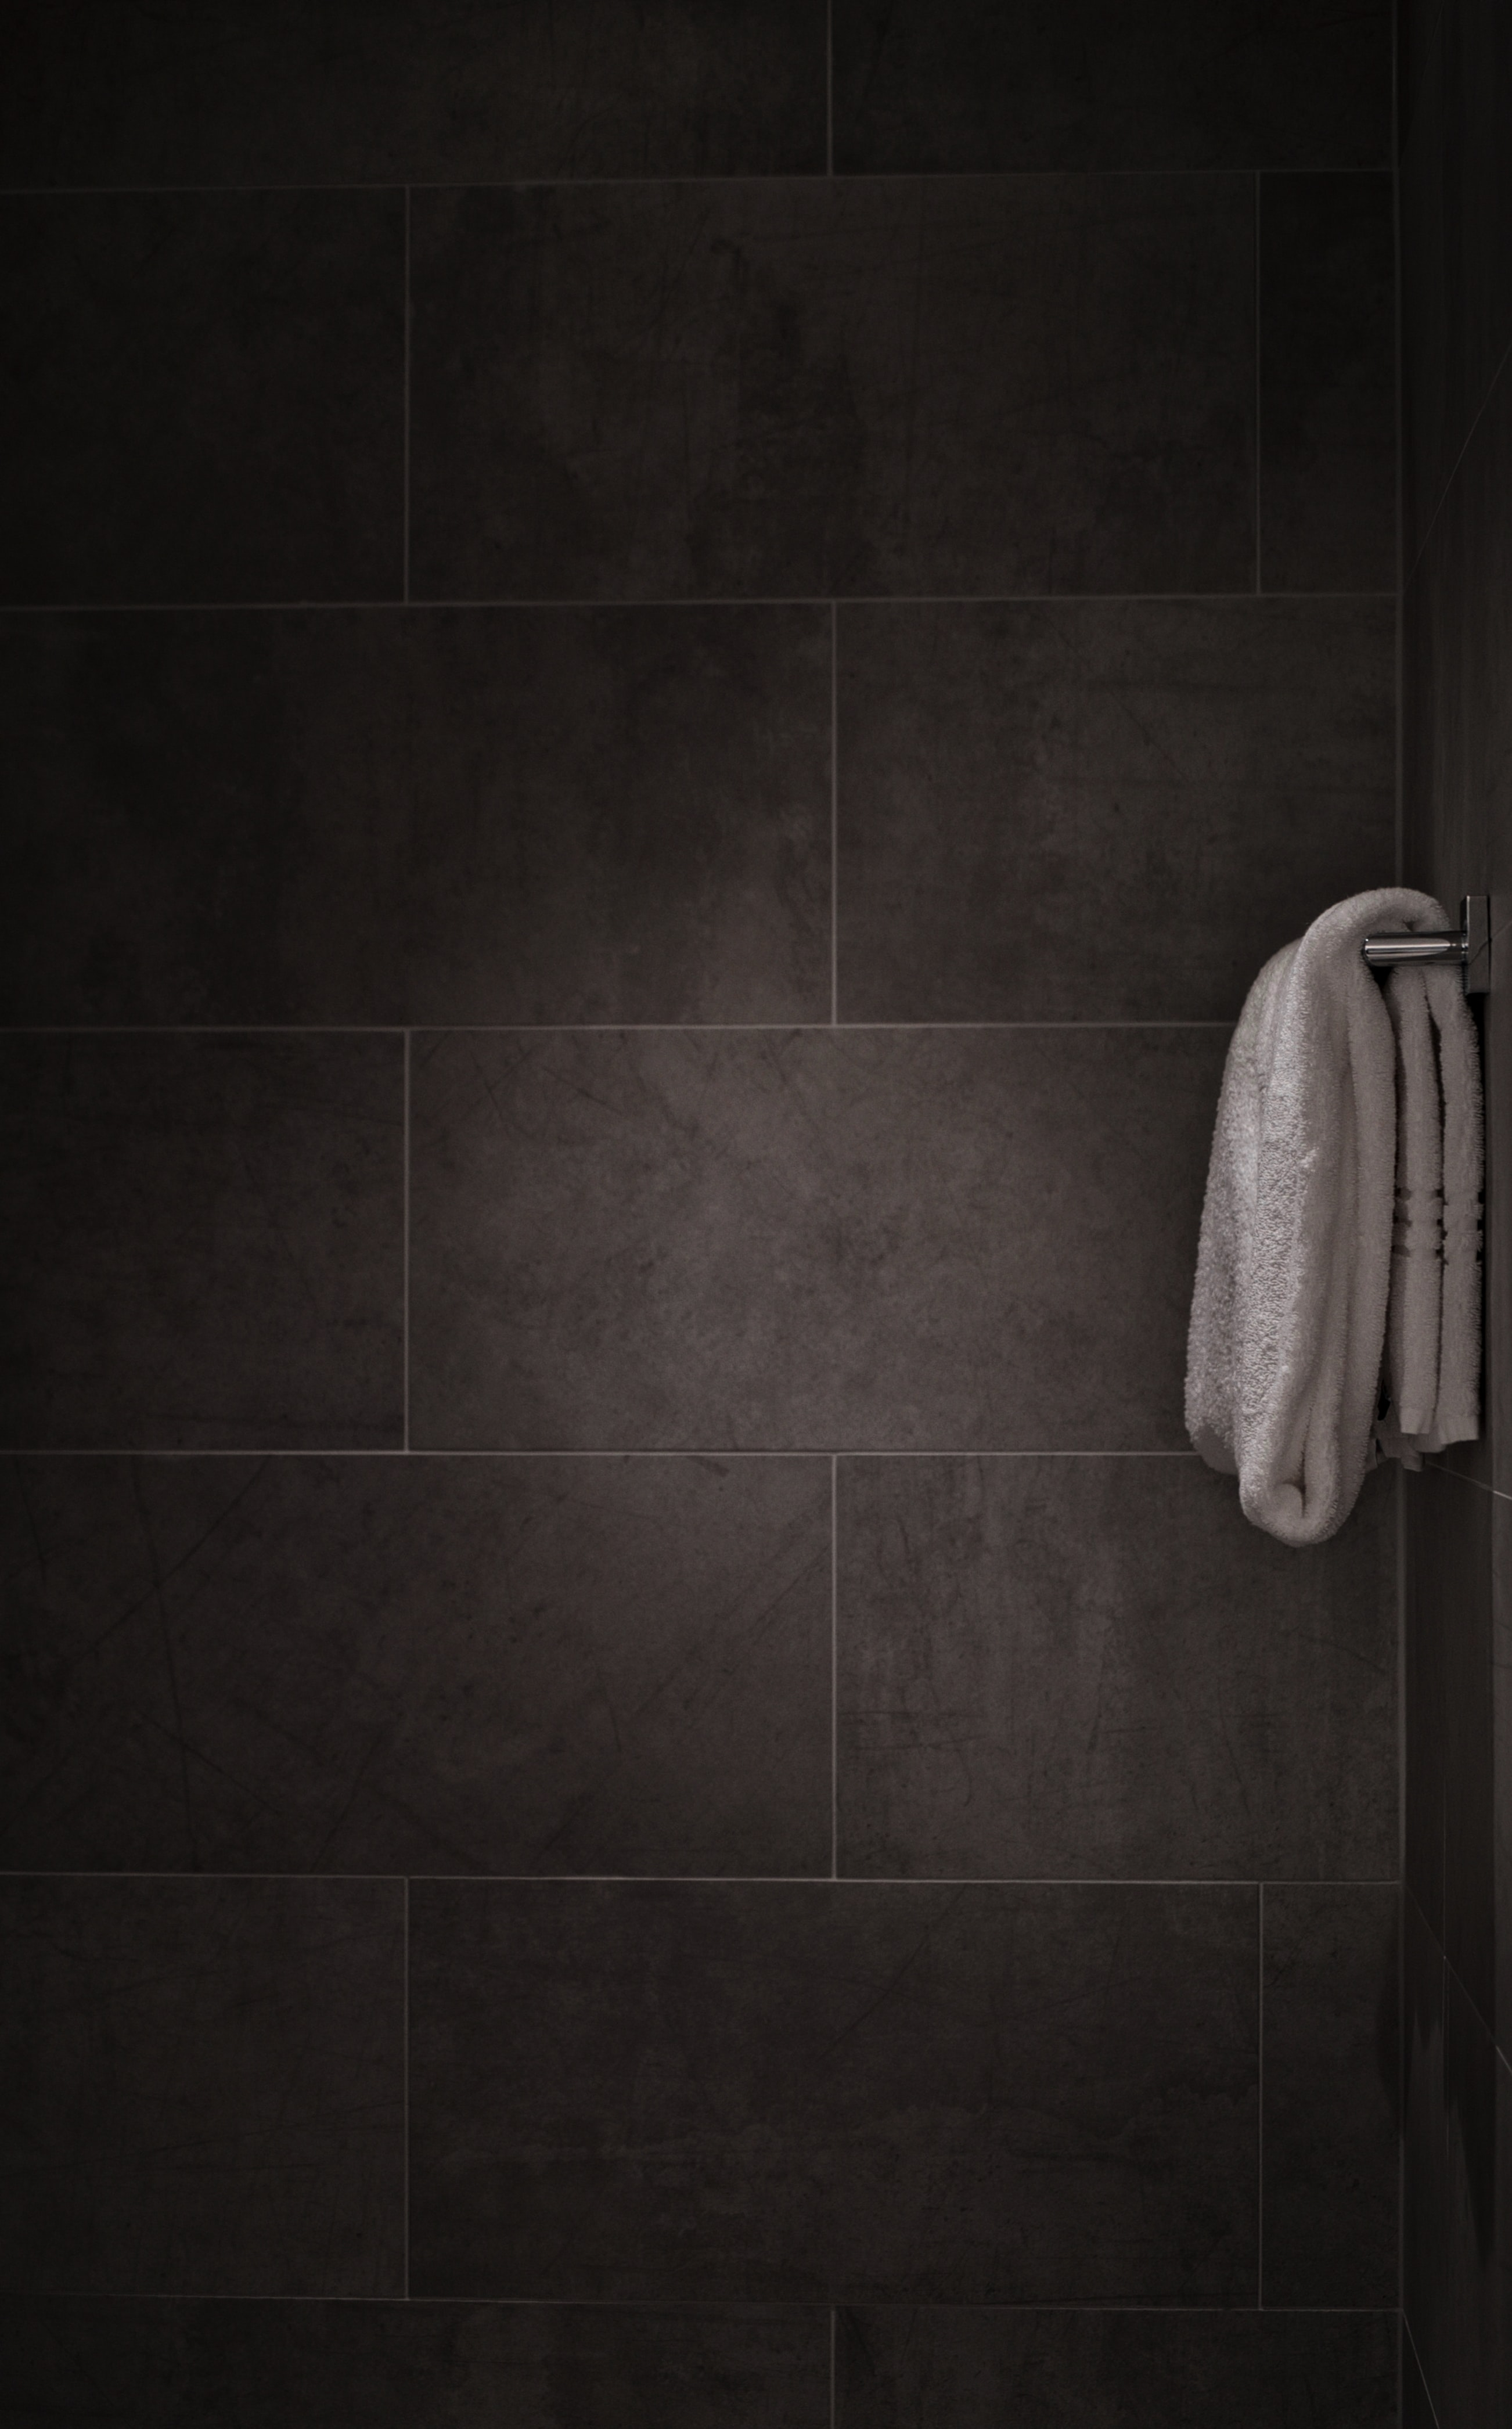 Black and white minimalist shot of white towel on rail in tiled bathroom